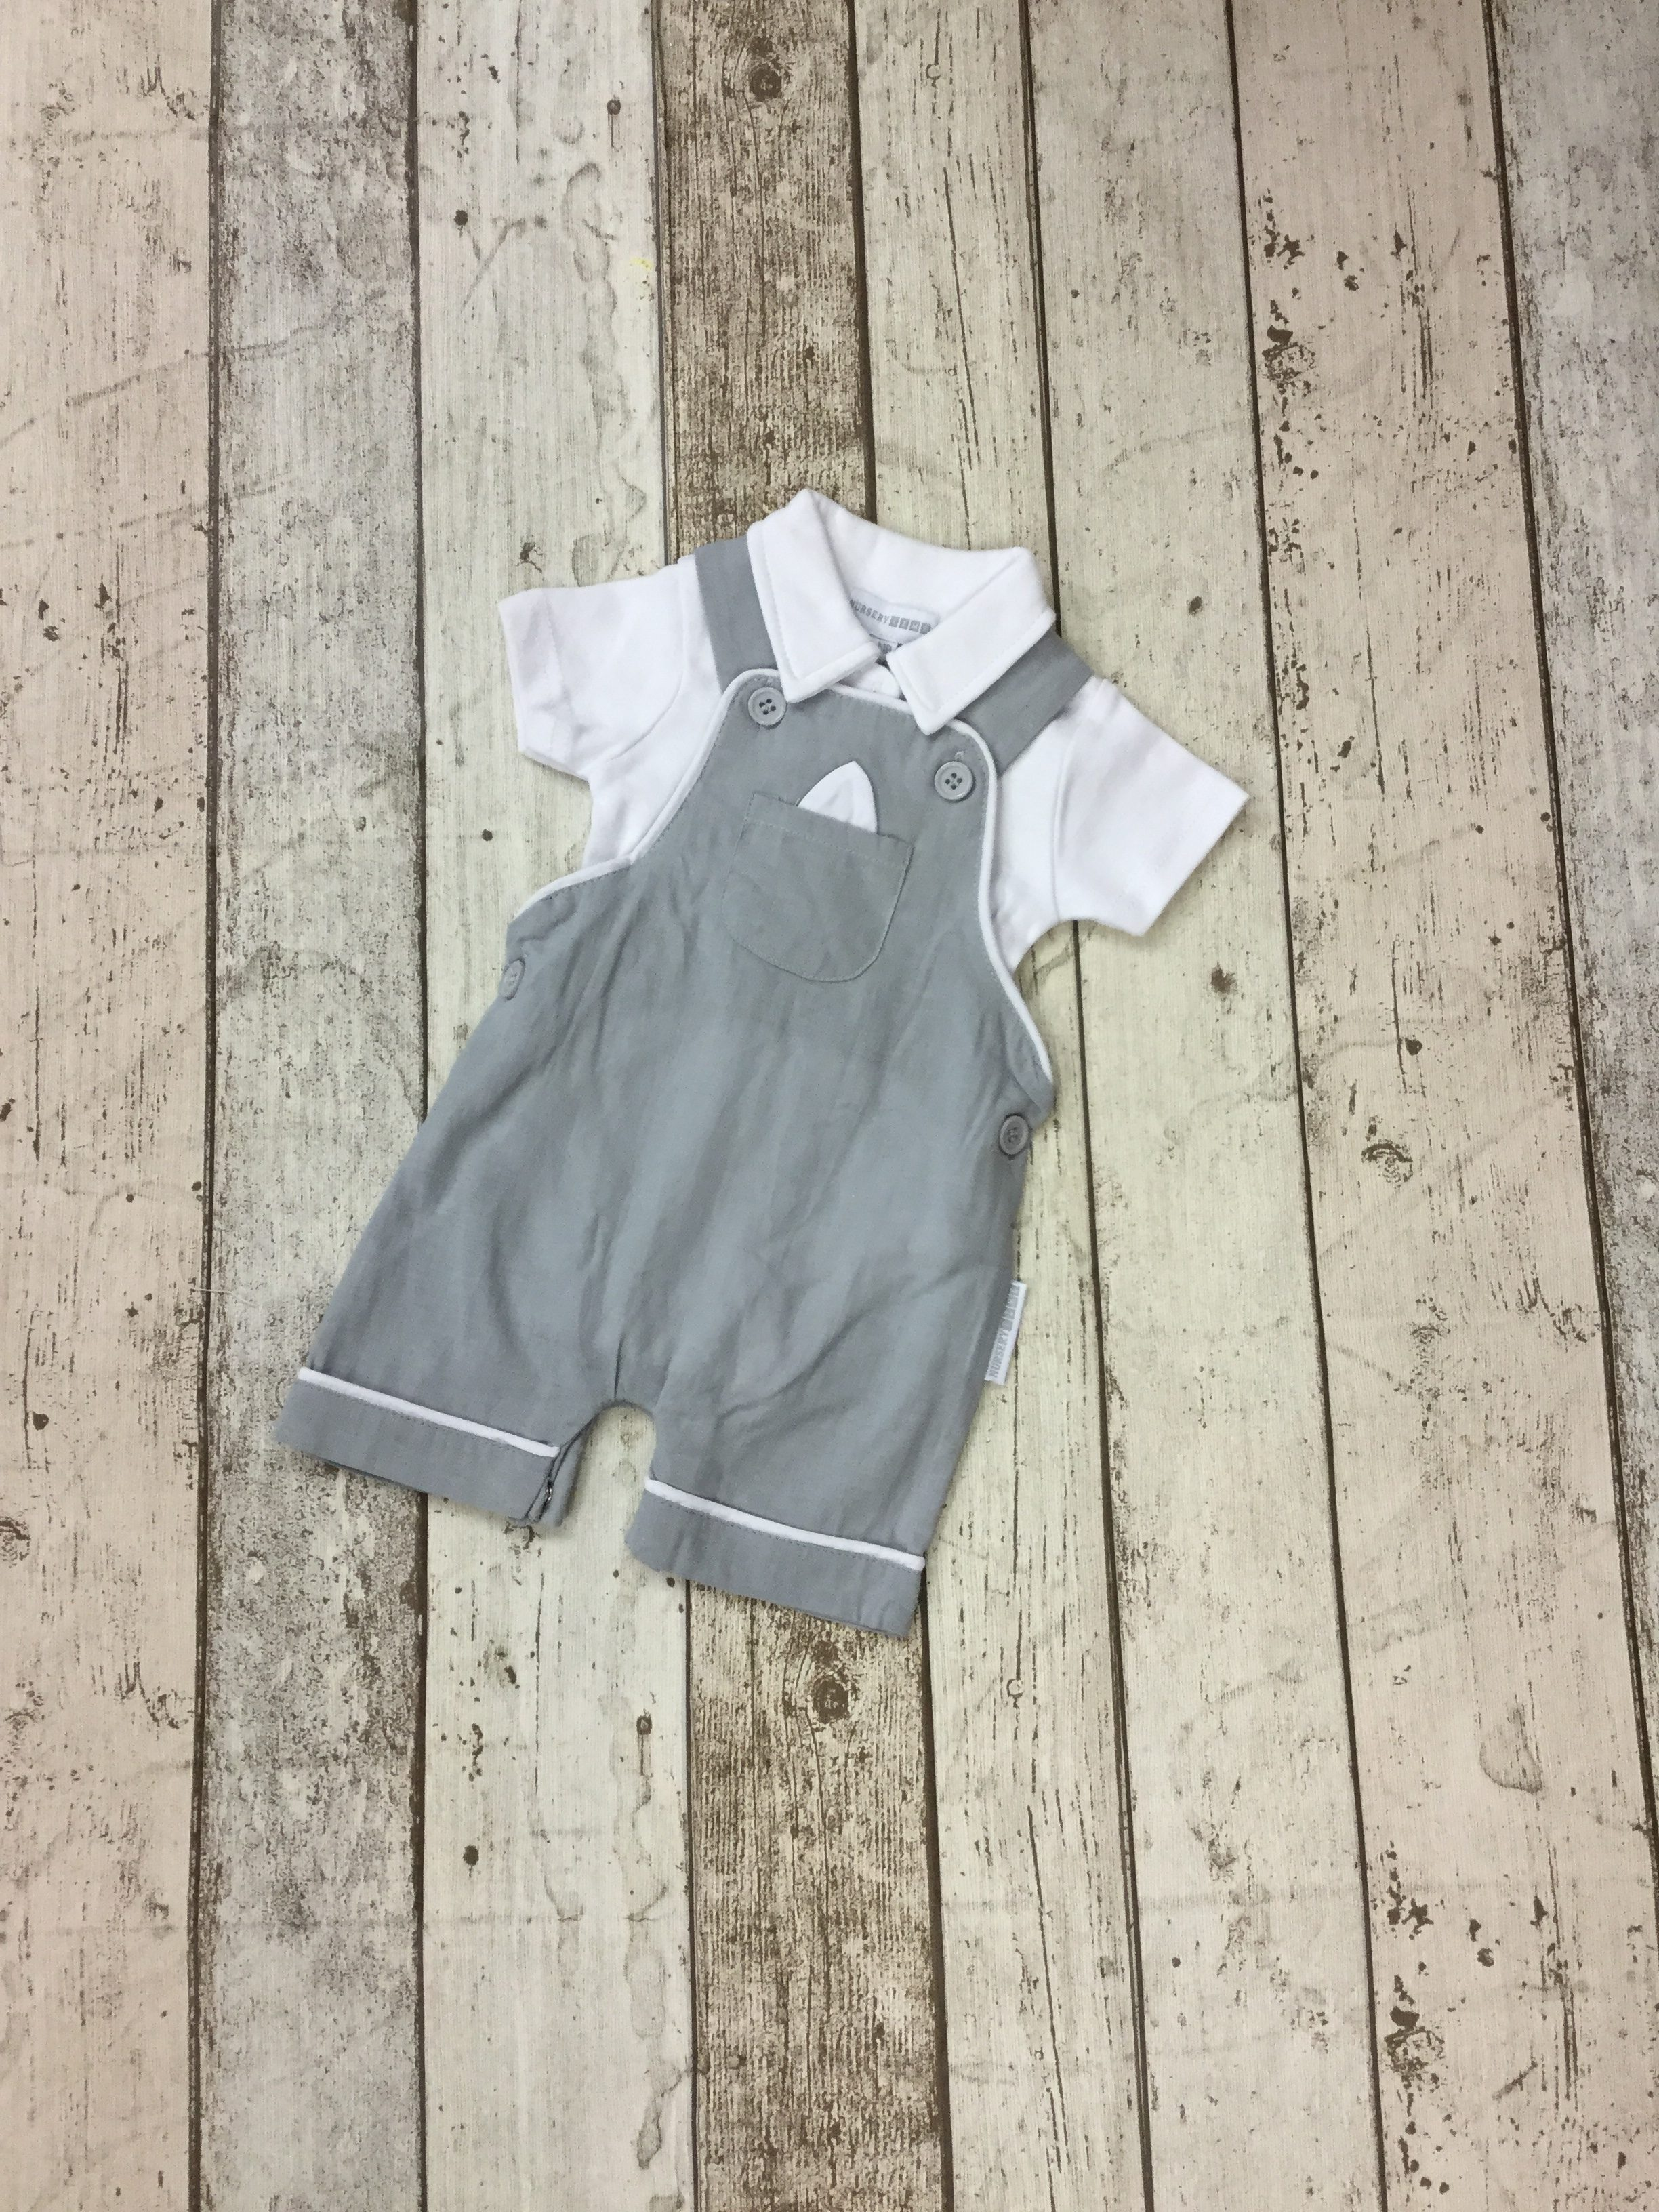 922de4918e14 BOYS GREY   WHITE ROMPER SET - Storky Baby and Childrenswear